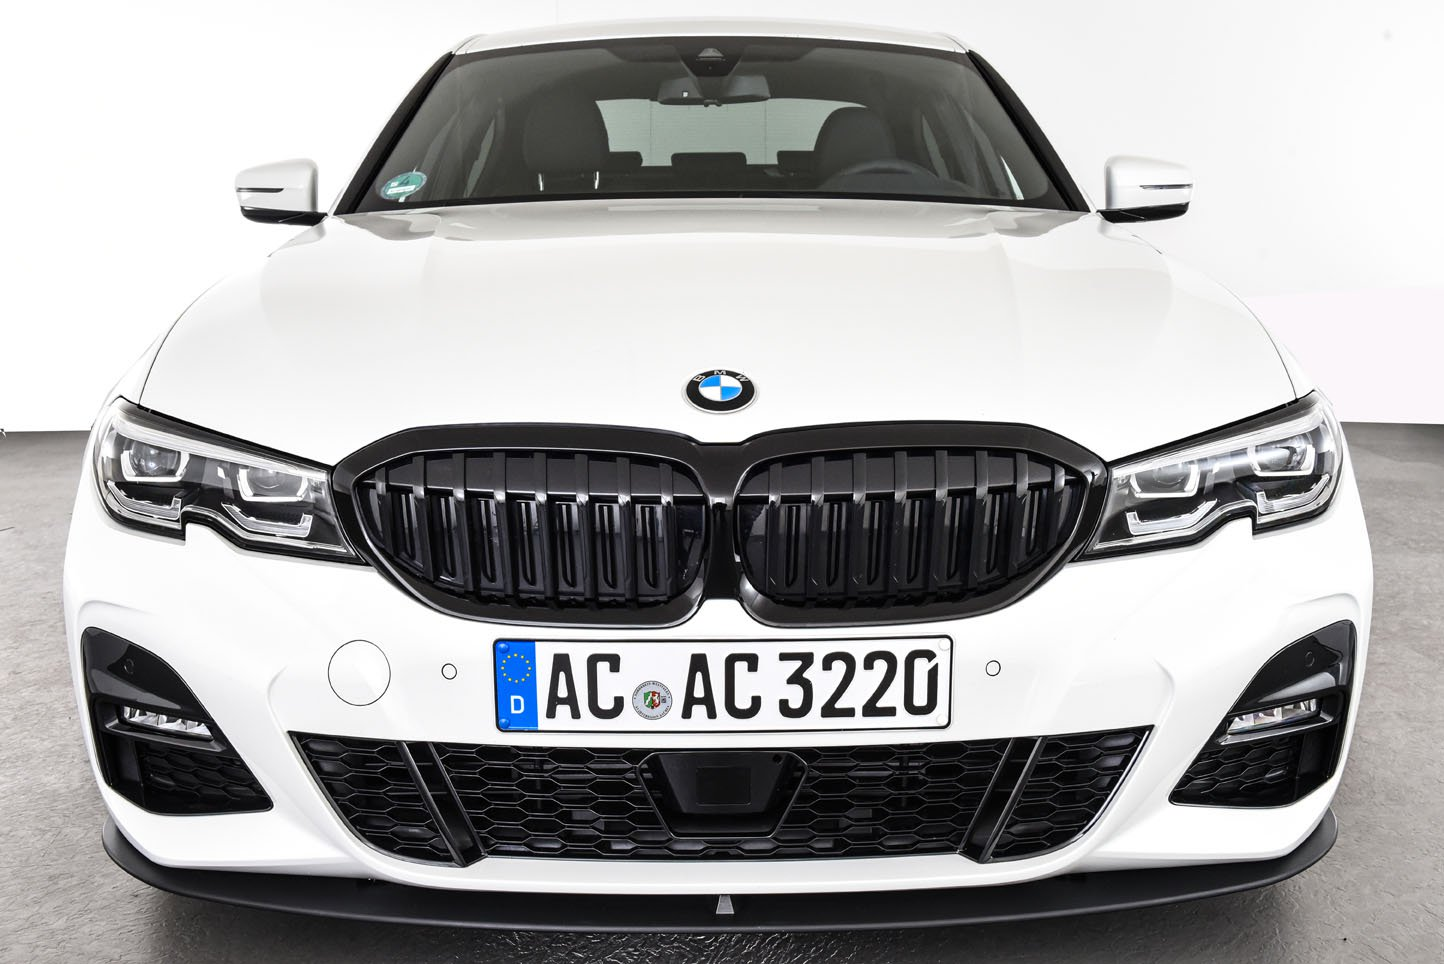 Name:  6dde3fb0-ac-schnitzer-tuning-parts-for-the-bmw-3-series-g20-6.jpg Views: 8075 Size:  165.3 KB